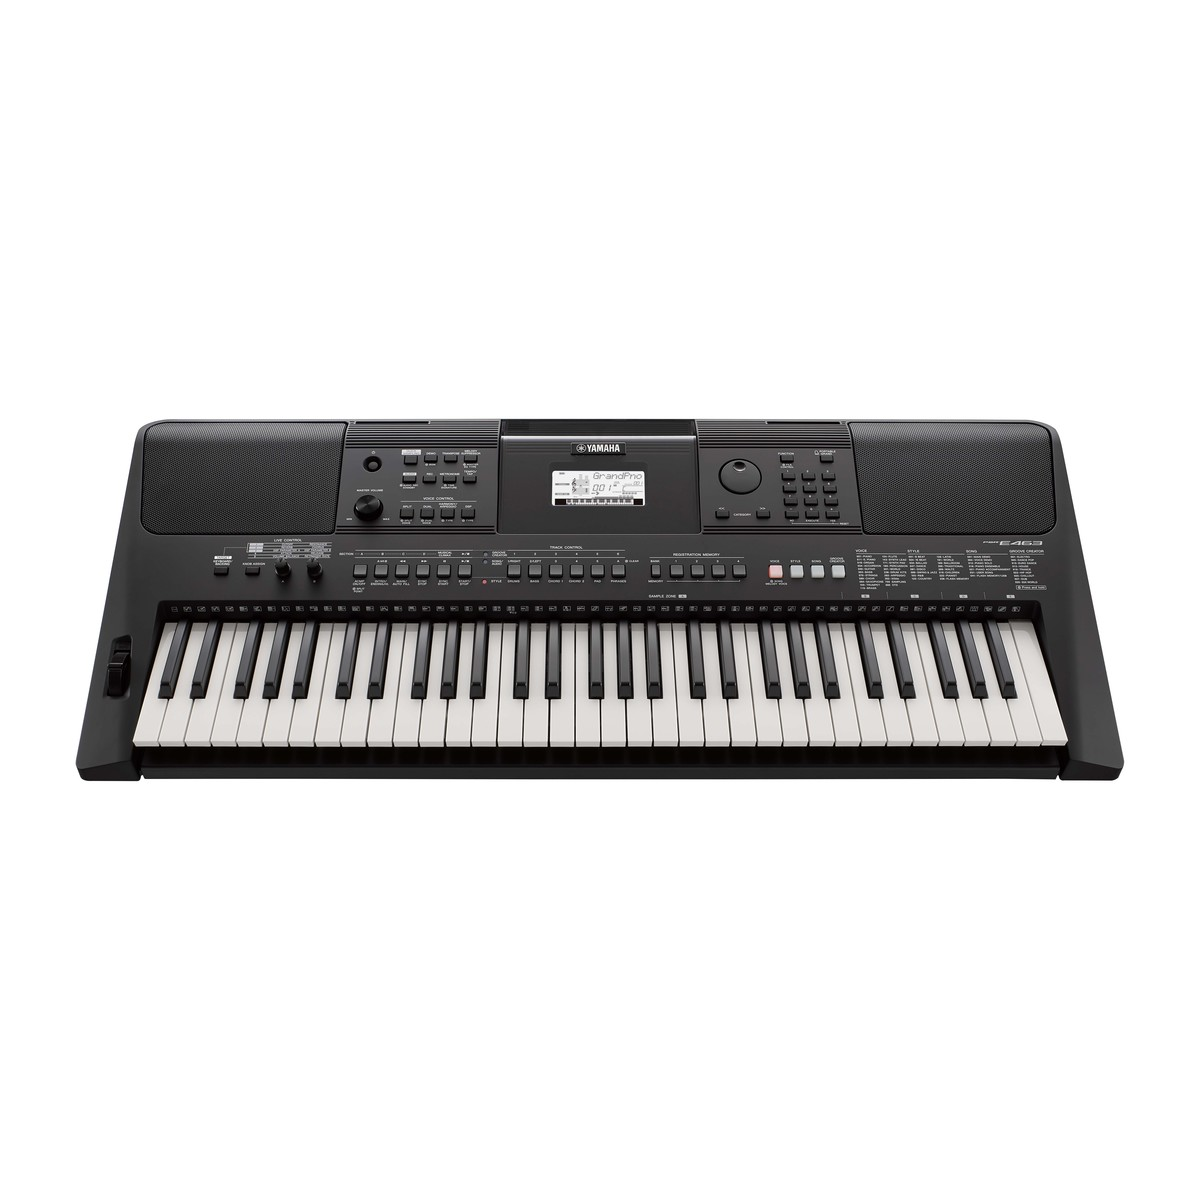 Yamaha psr e463 keyboard at gear4music for Yamaha credit application